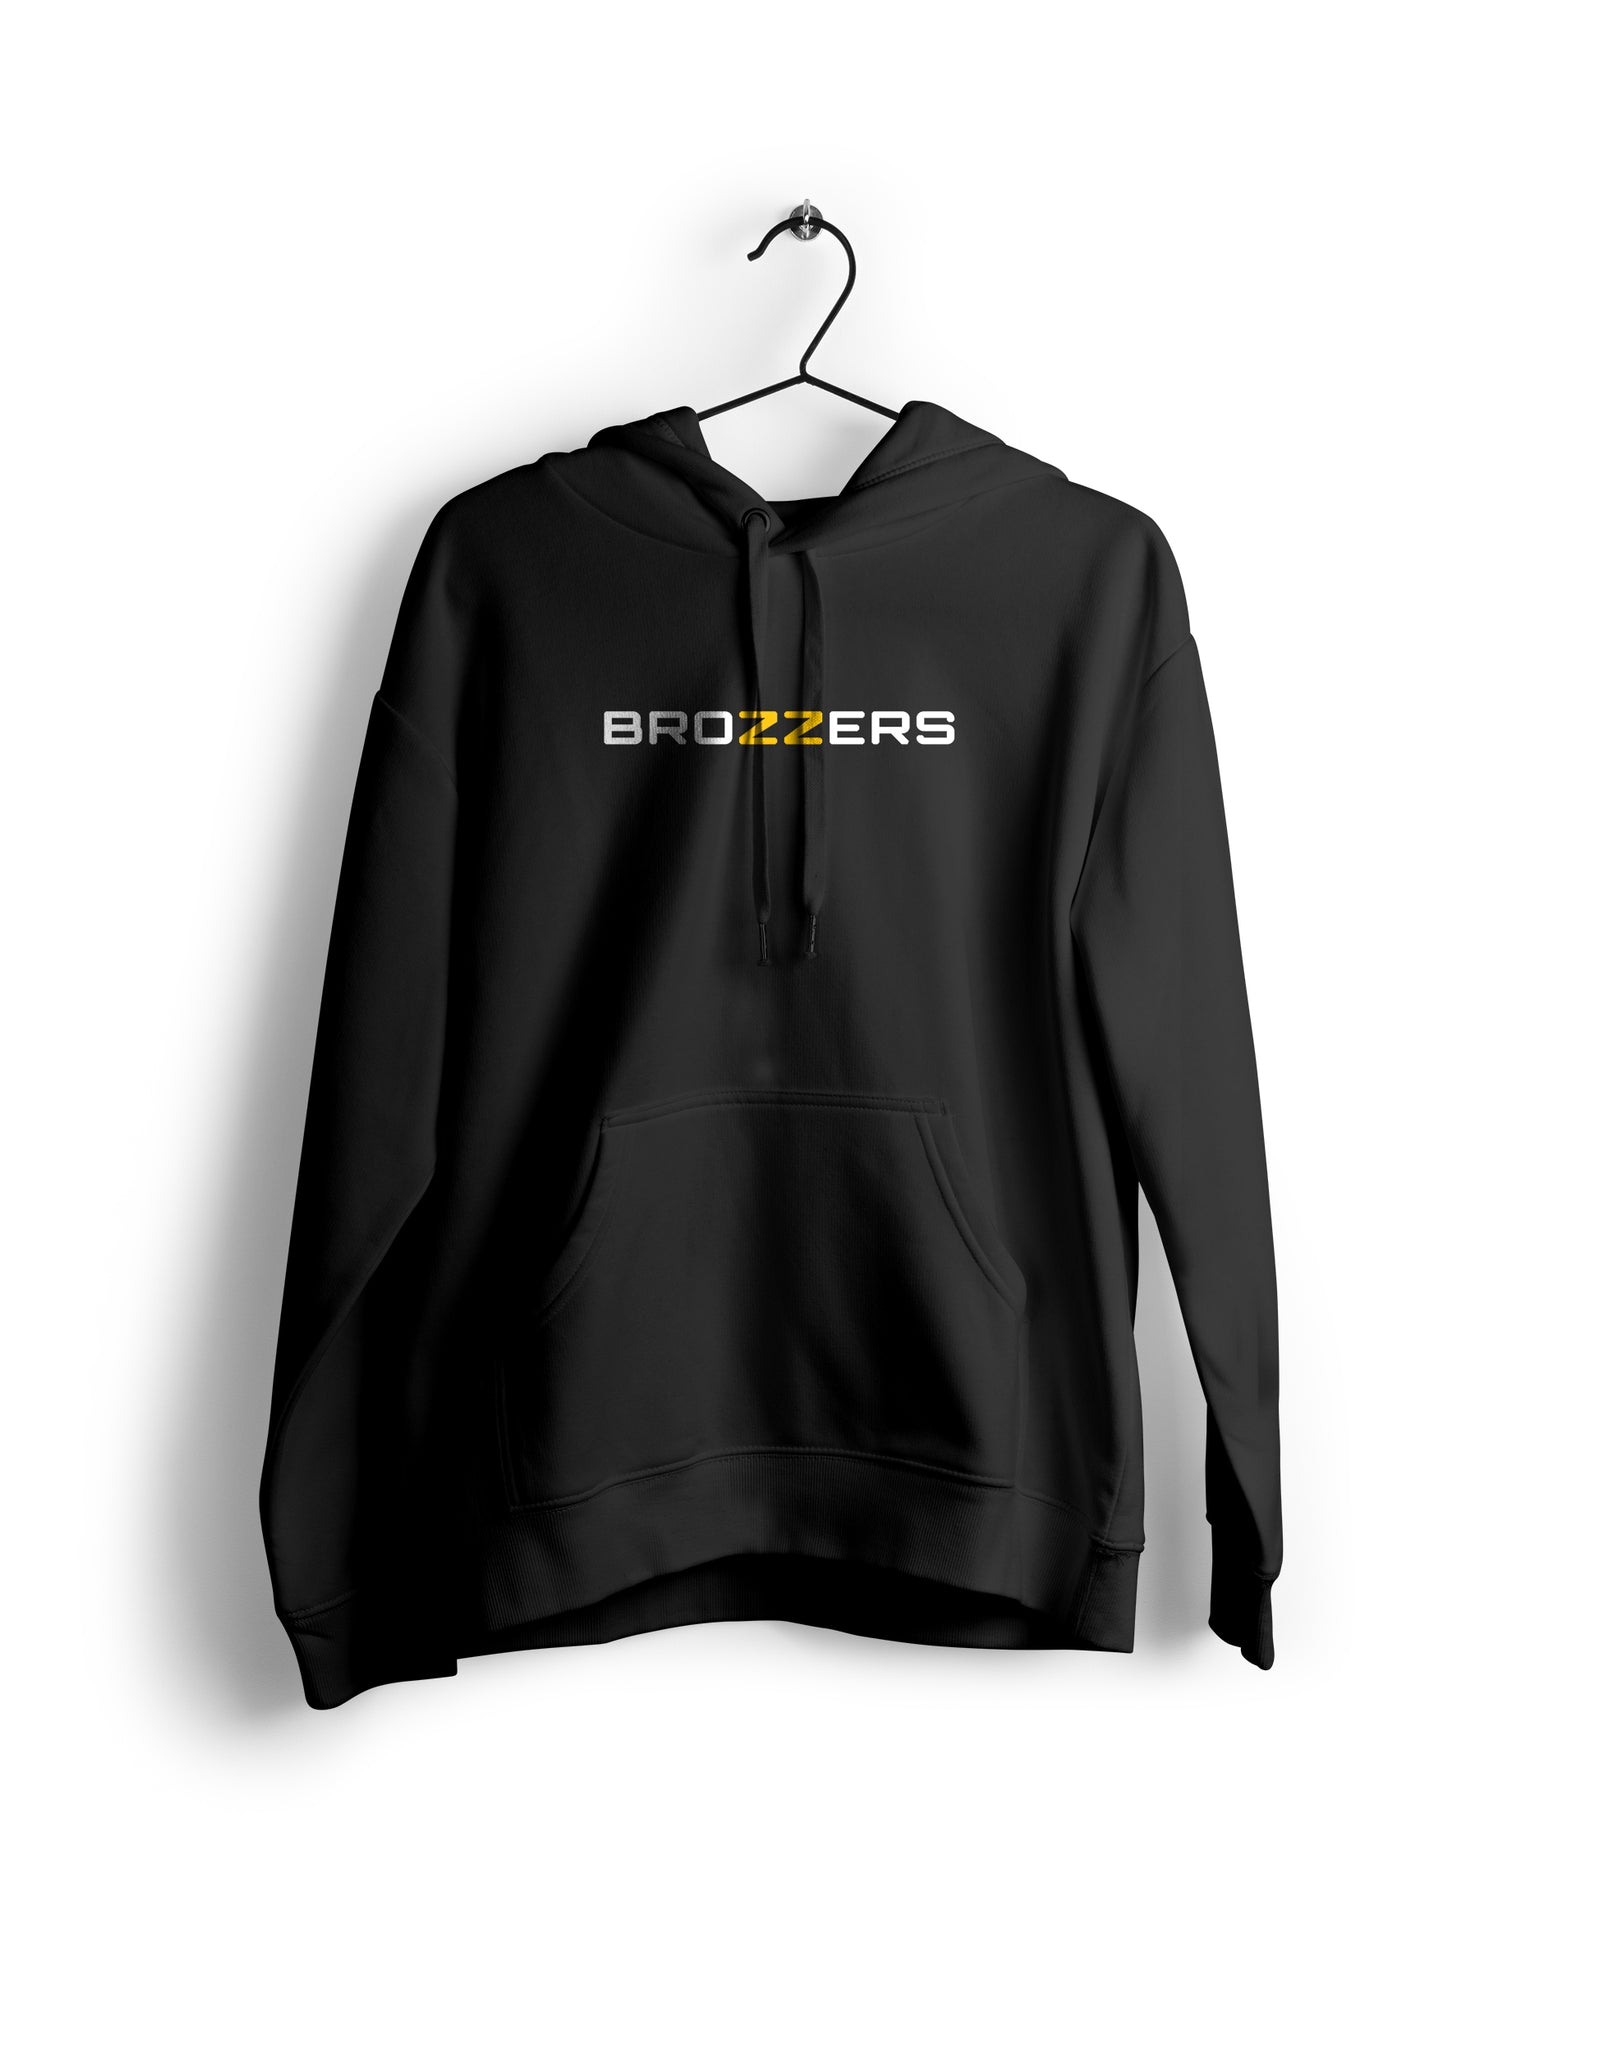 S / Black Brozzers hood - Thrill Clothing